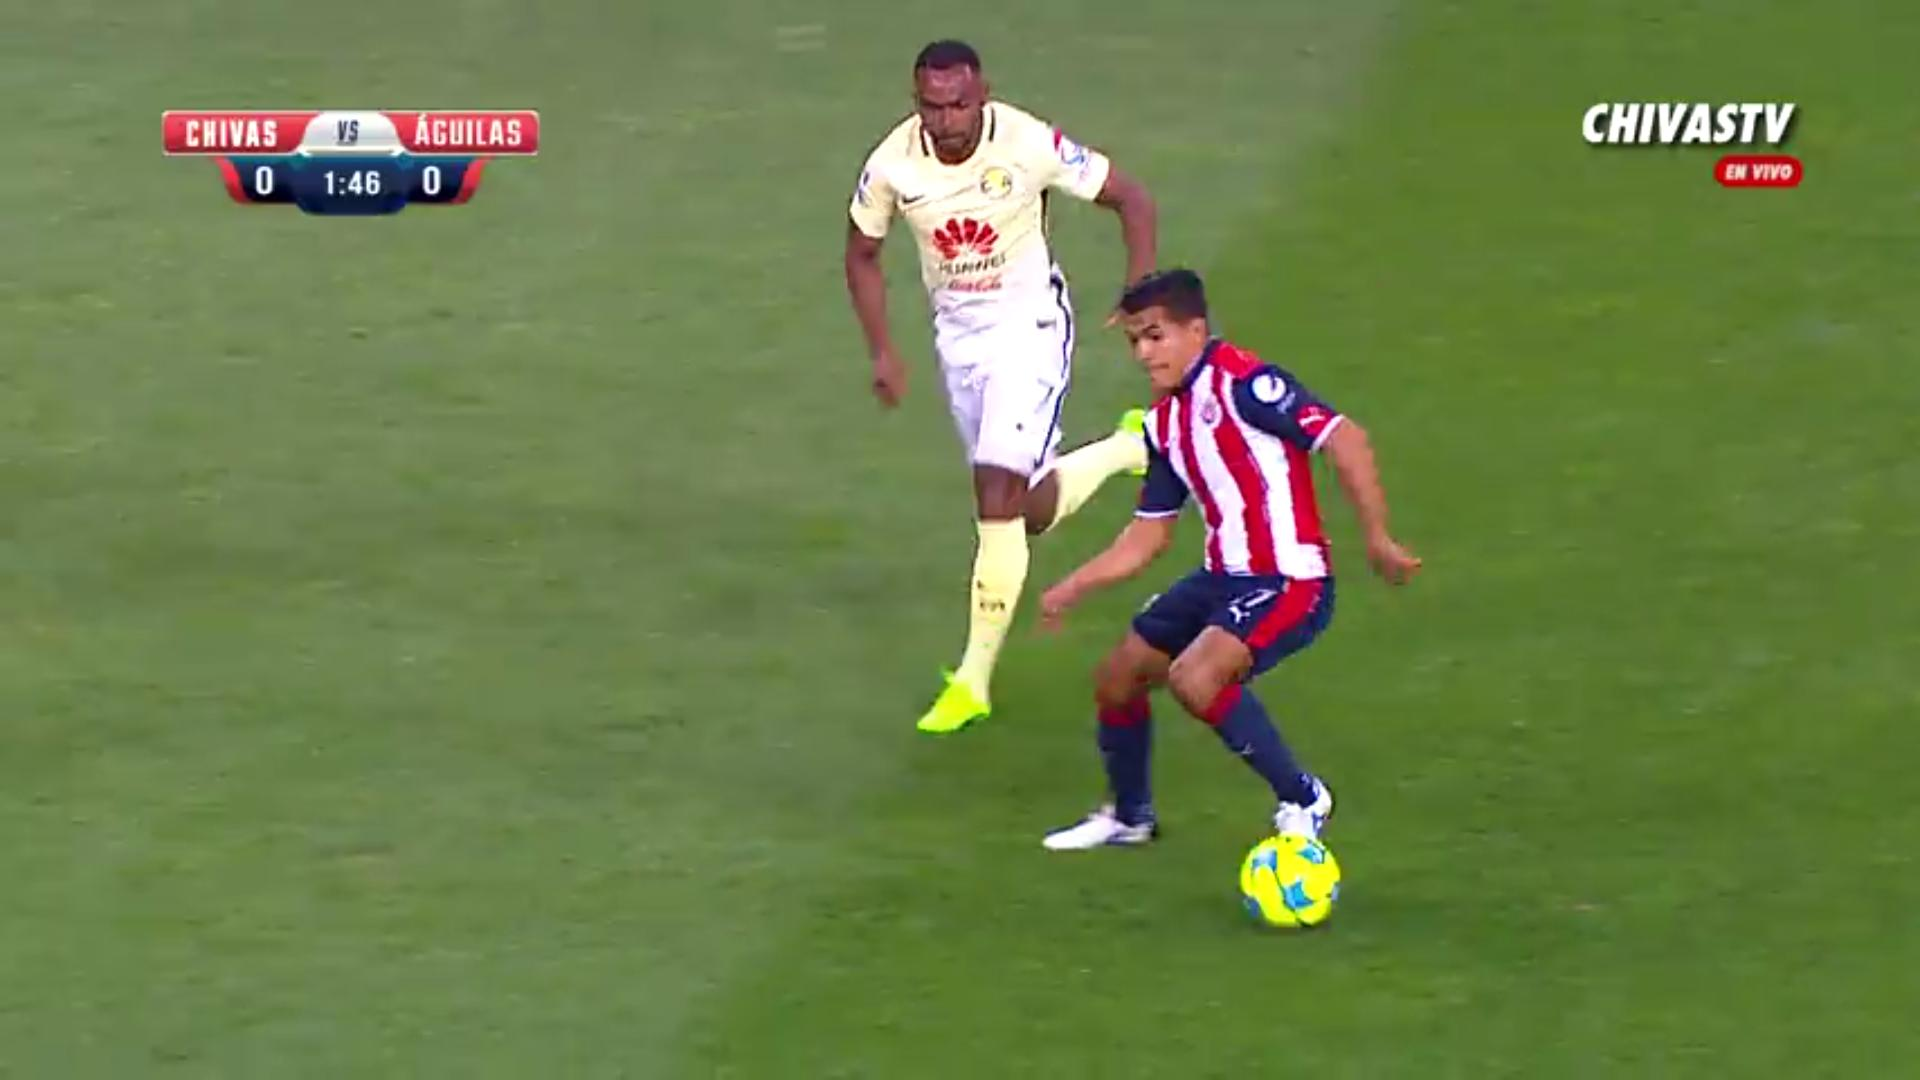 Chivas TV en vivo